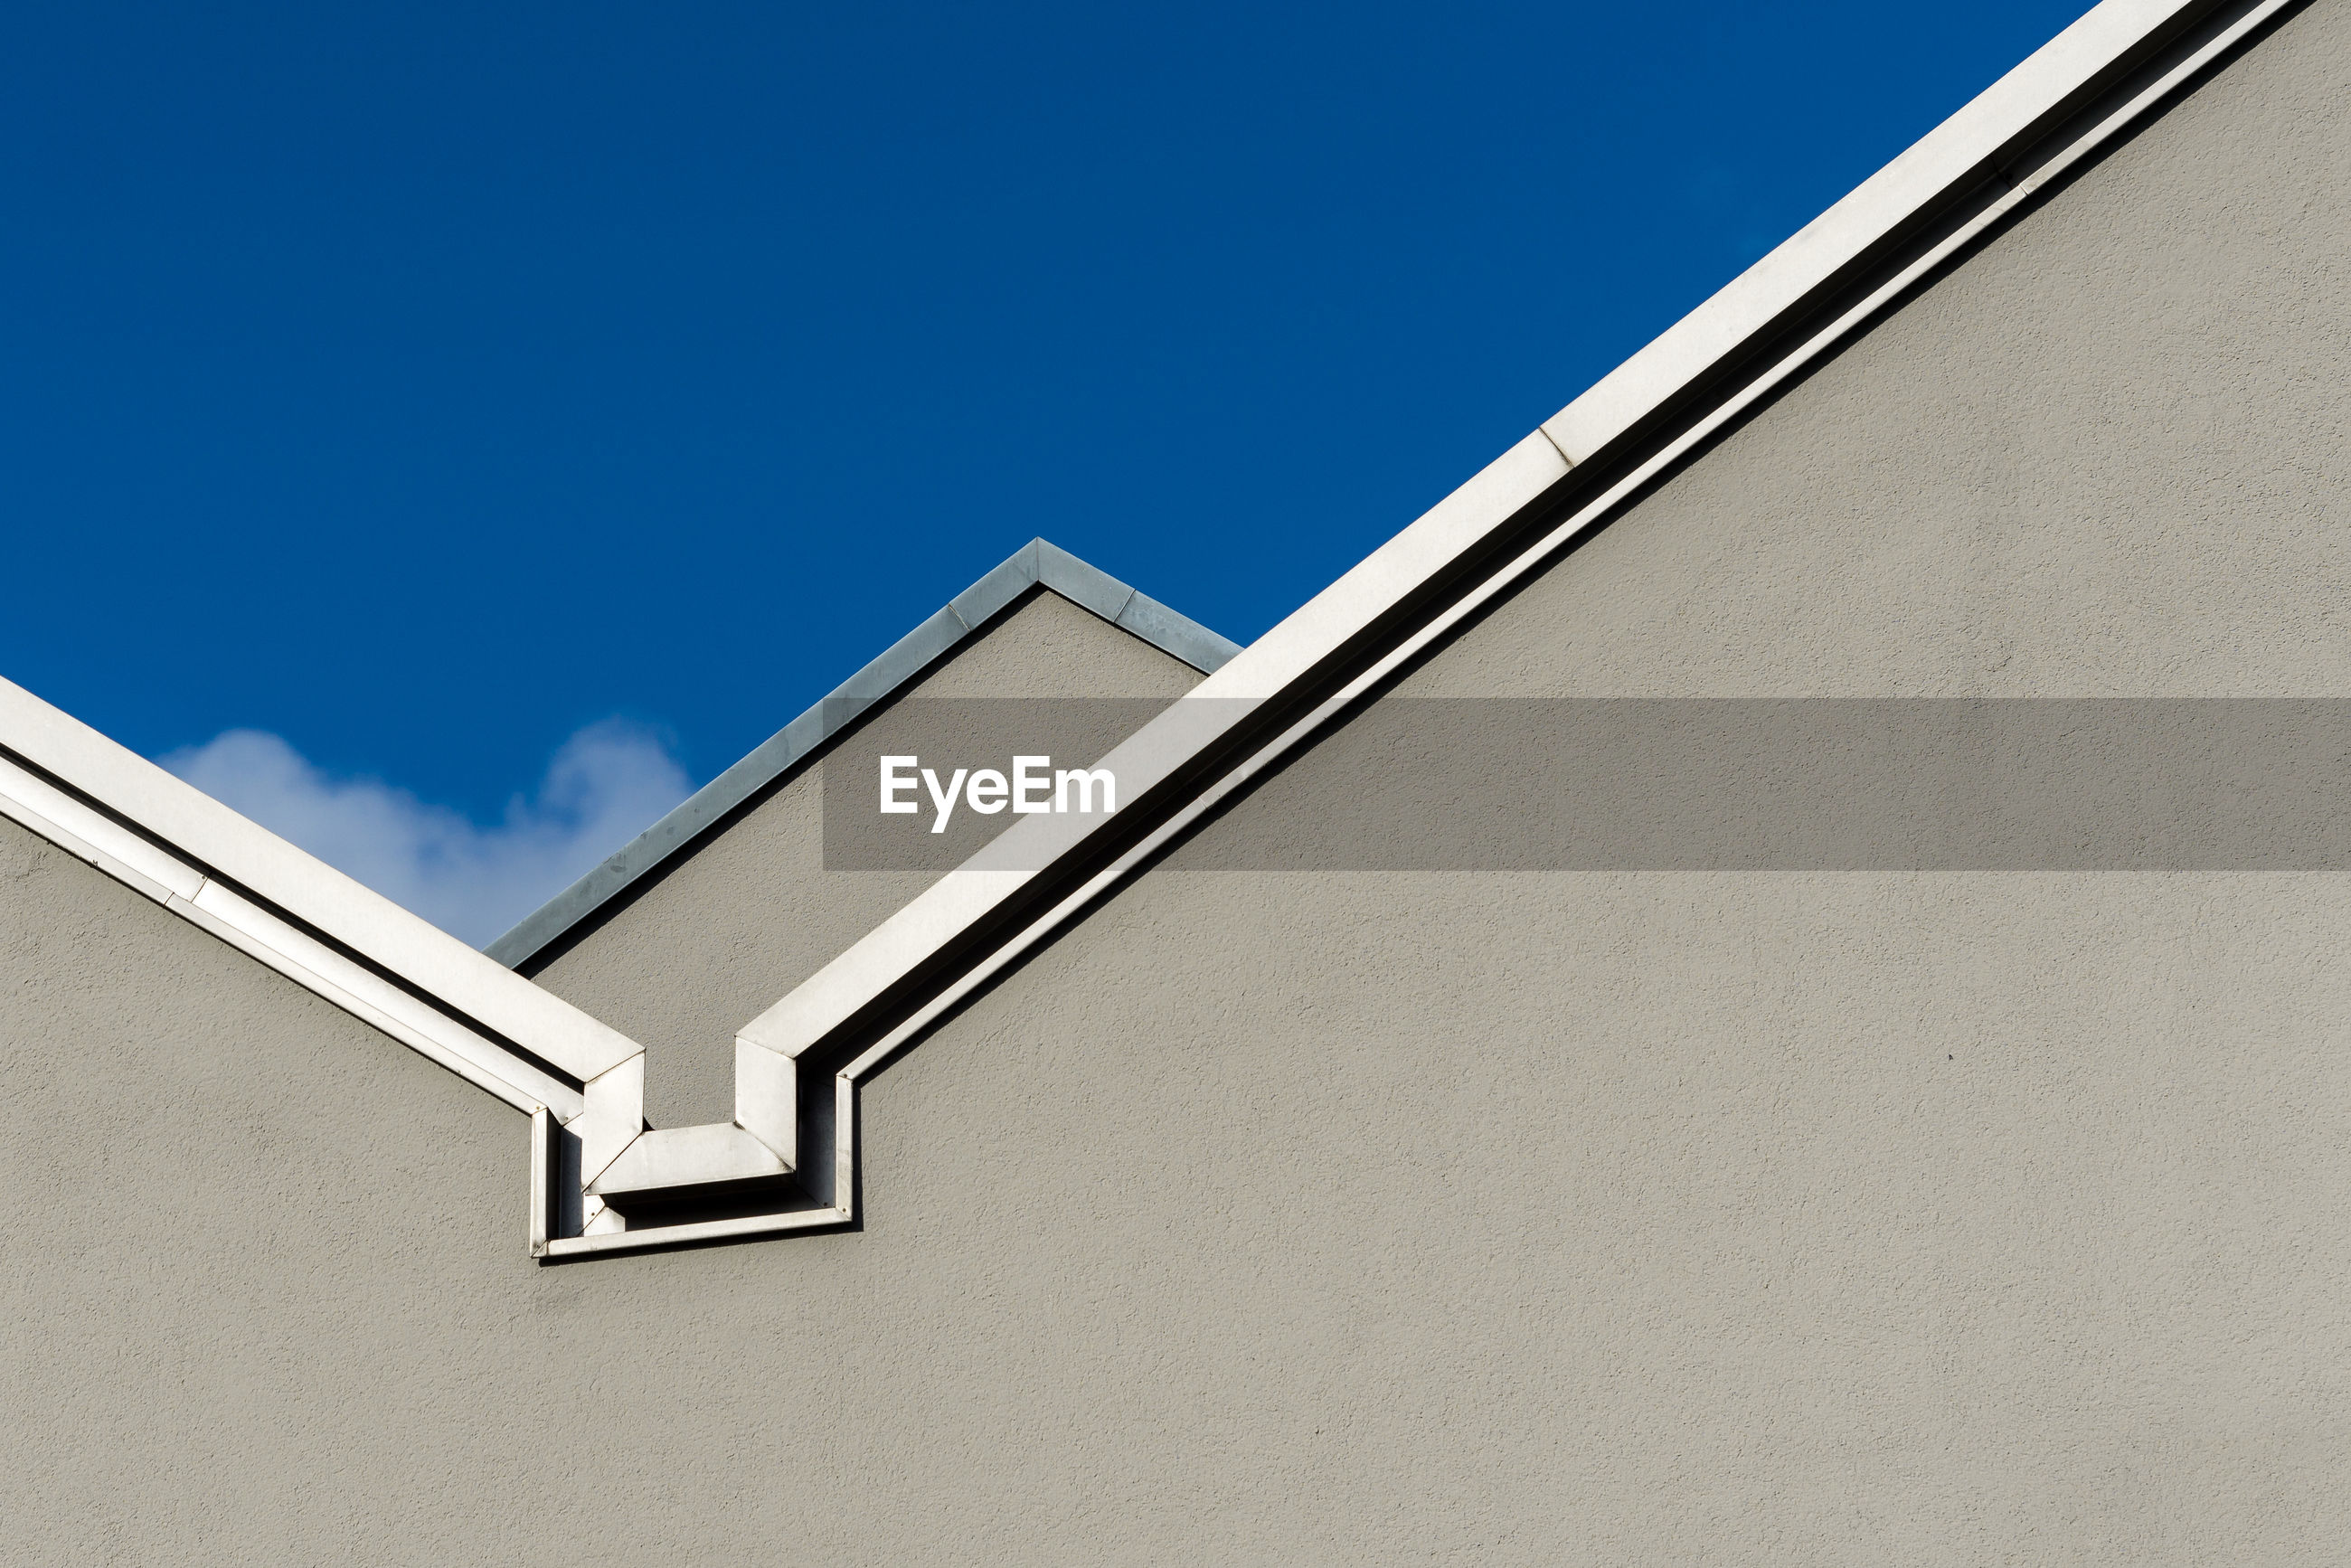 architecture, sky, built structure, building exterior, building, low angle view, copy space, wall - building feature, blue, day, no people, nature, clear sky, window, white color, outdoors, wall, sunlight, house, metal, window frame